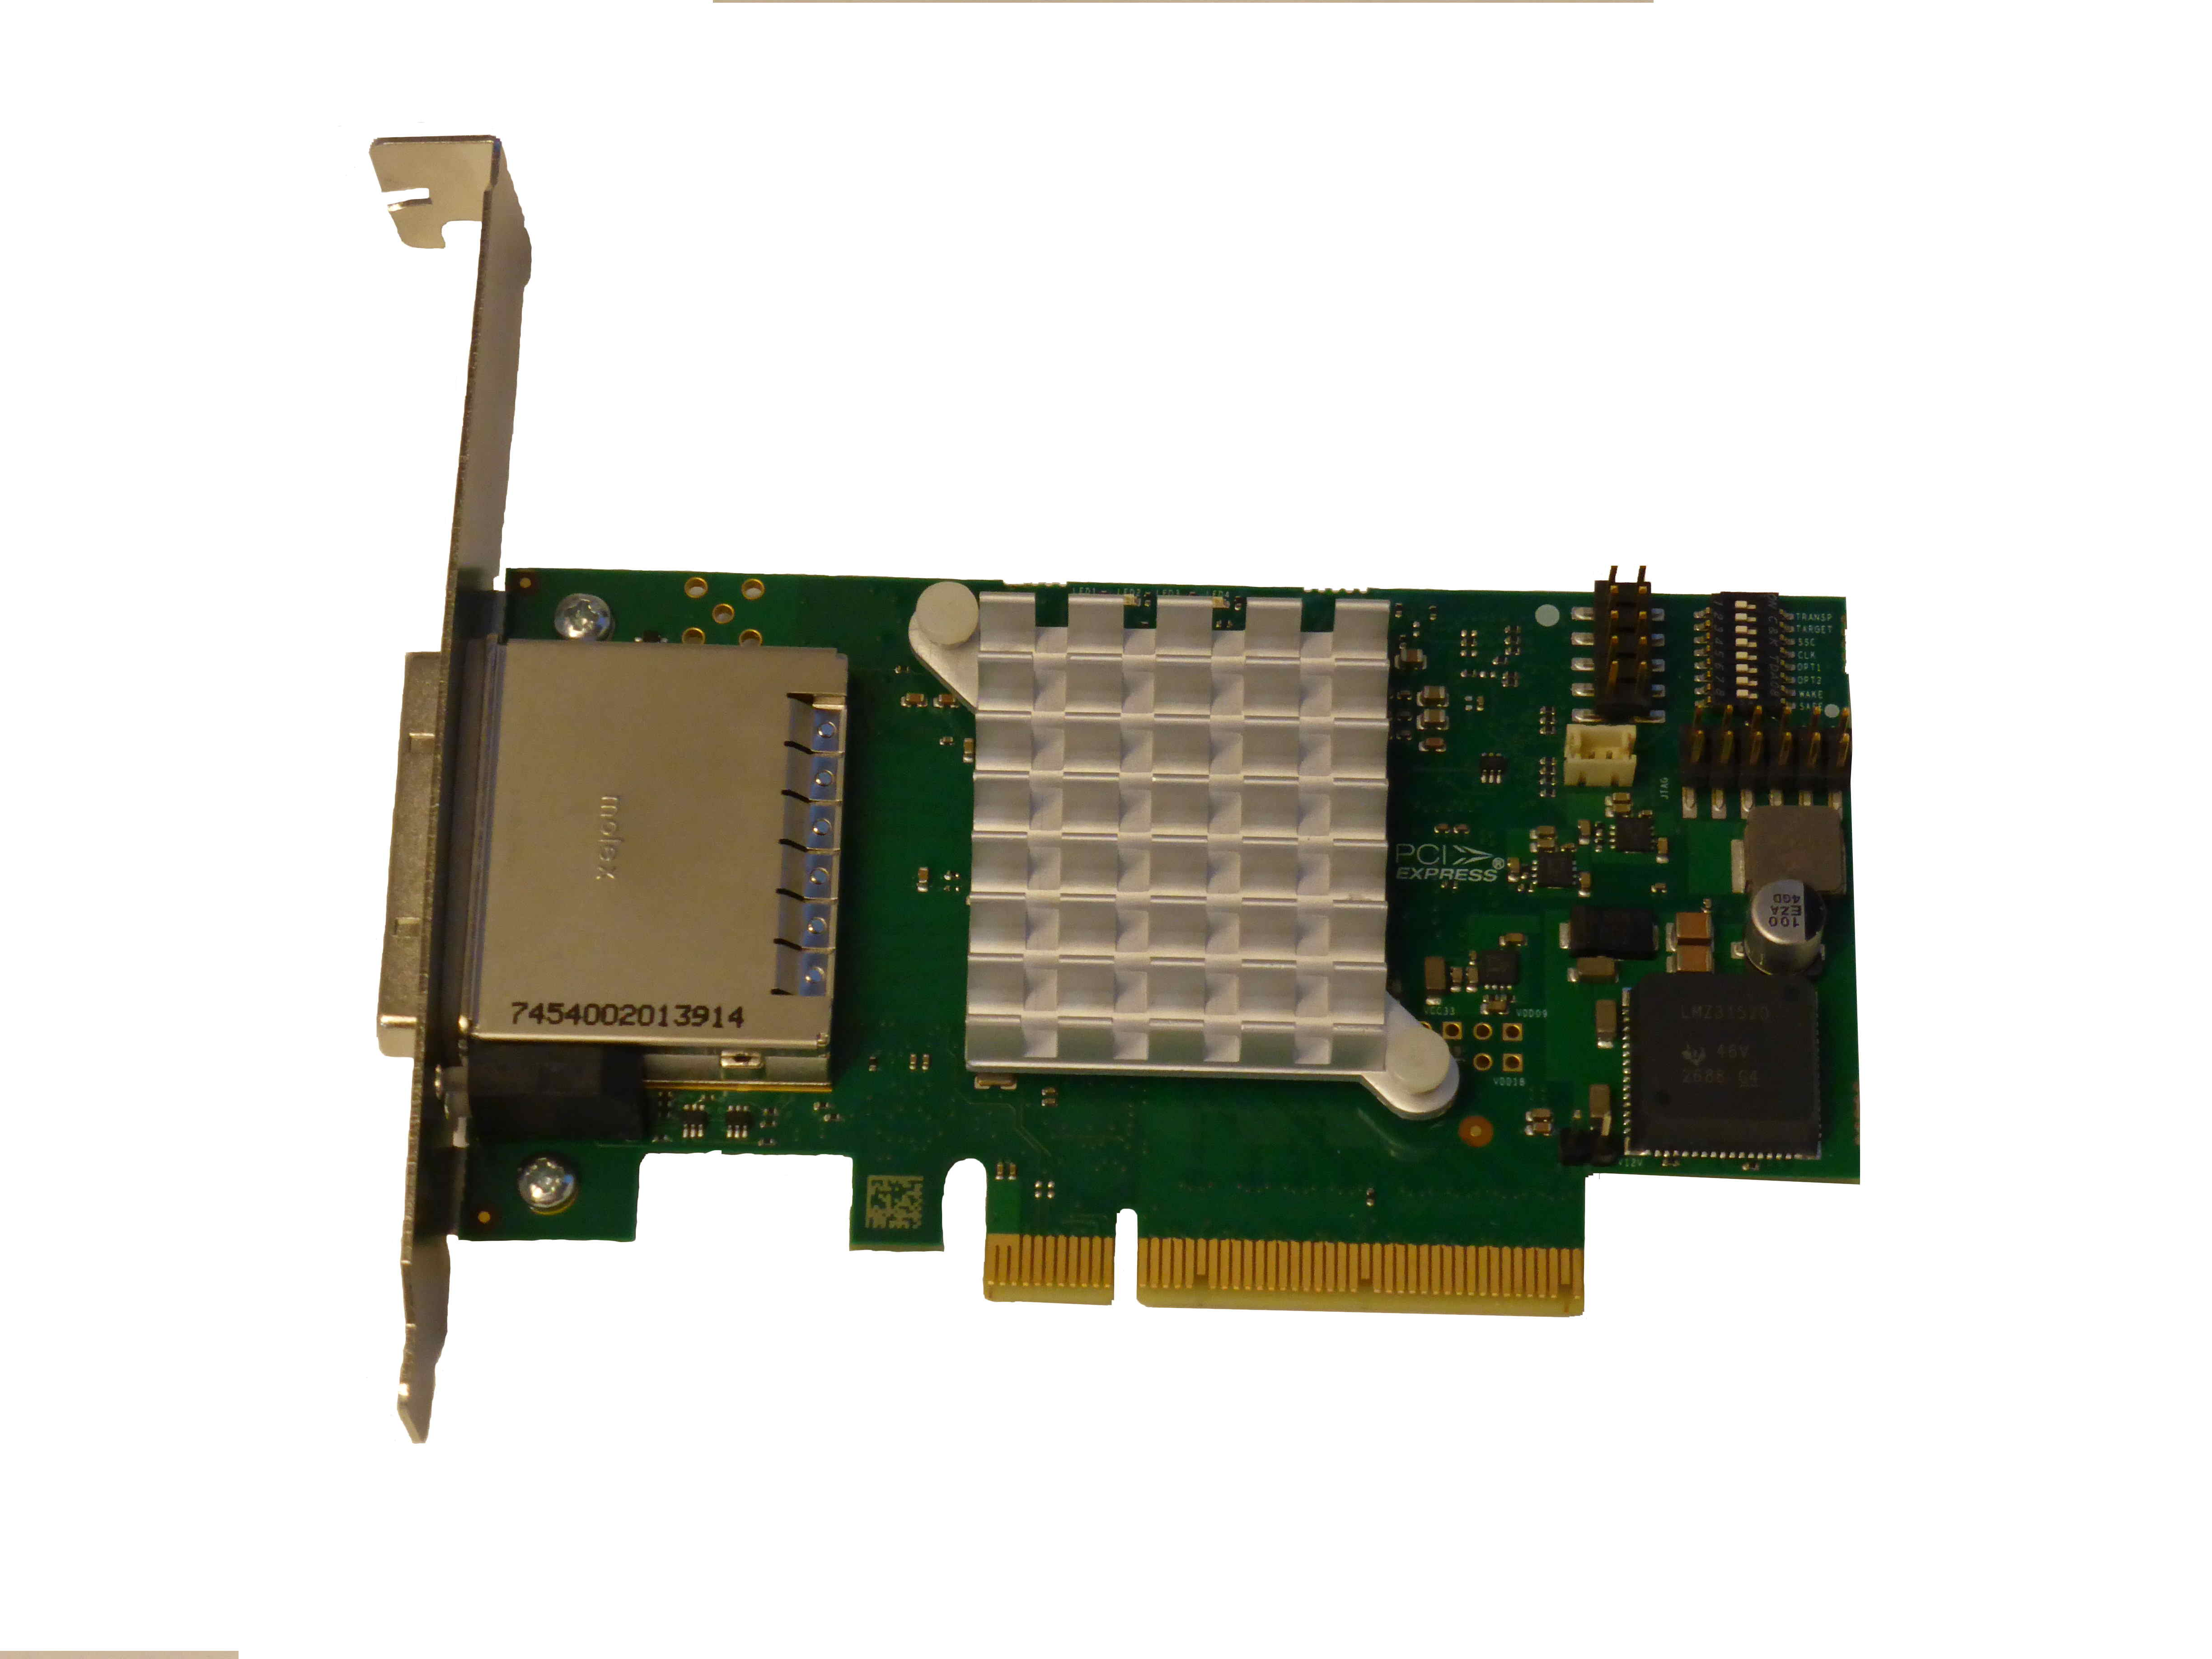 PXH810 Gen3 Host Adapter